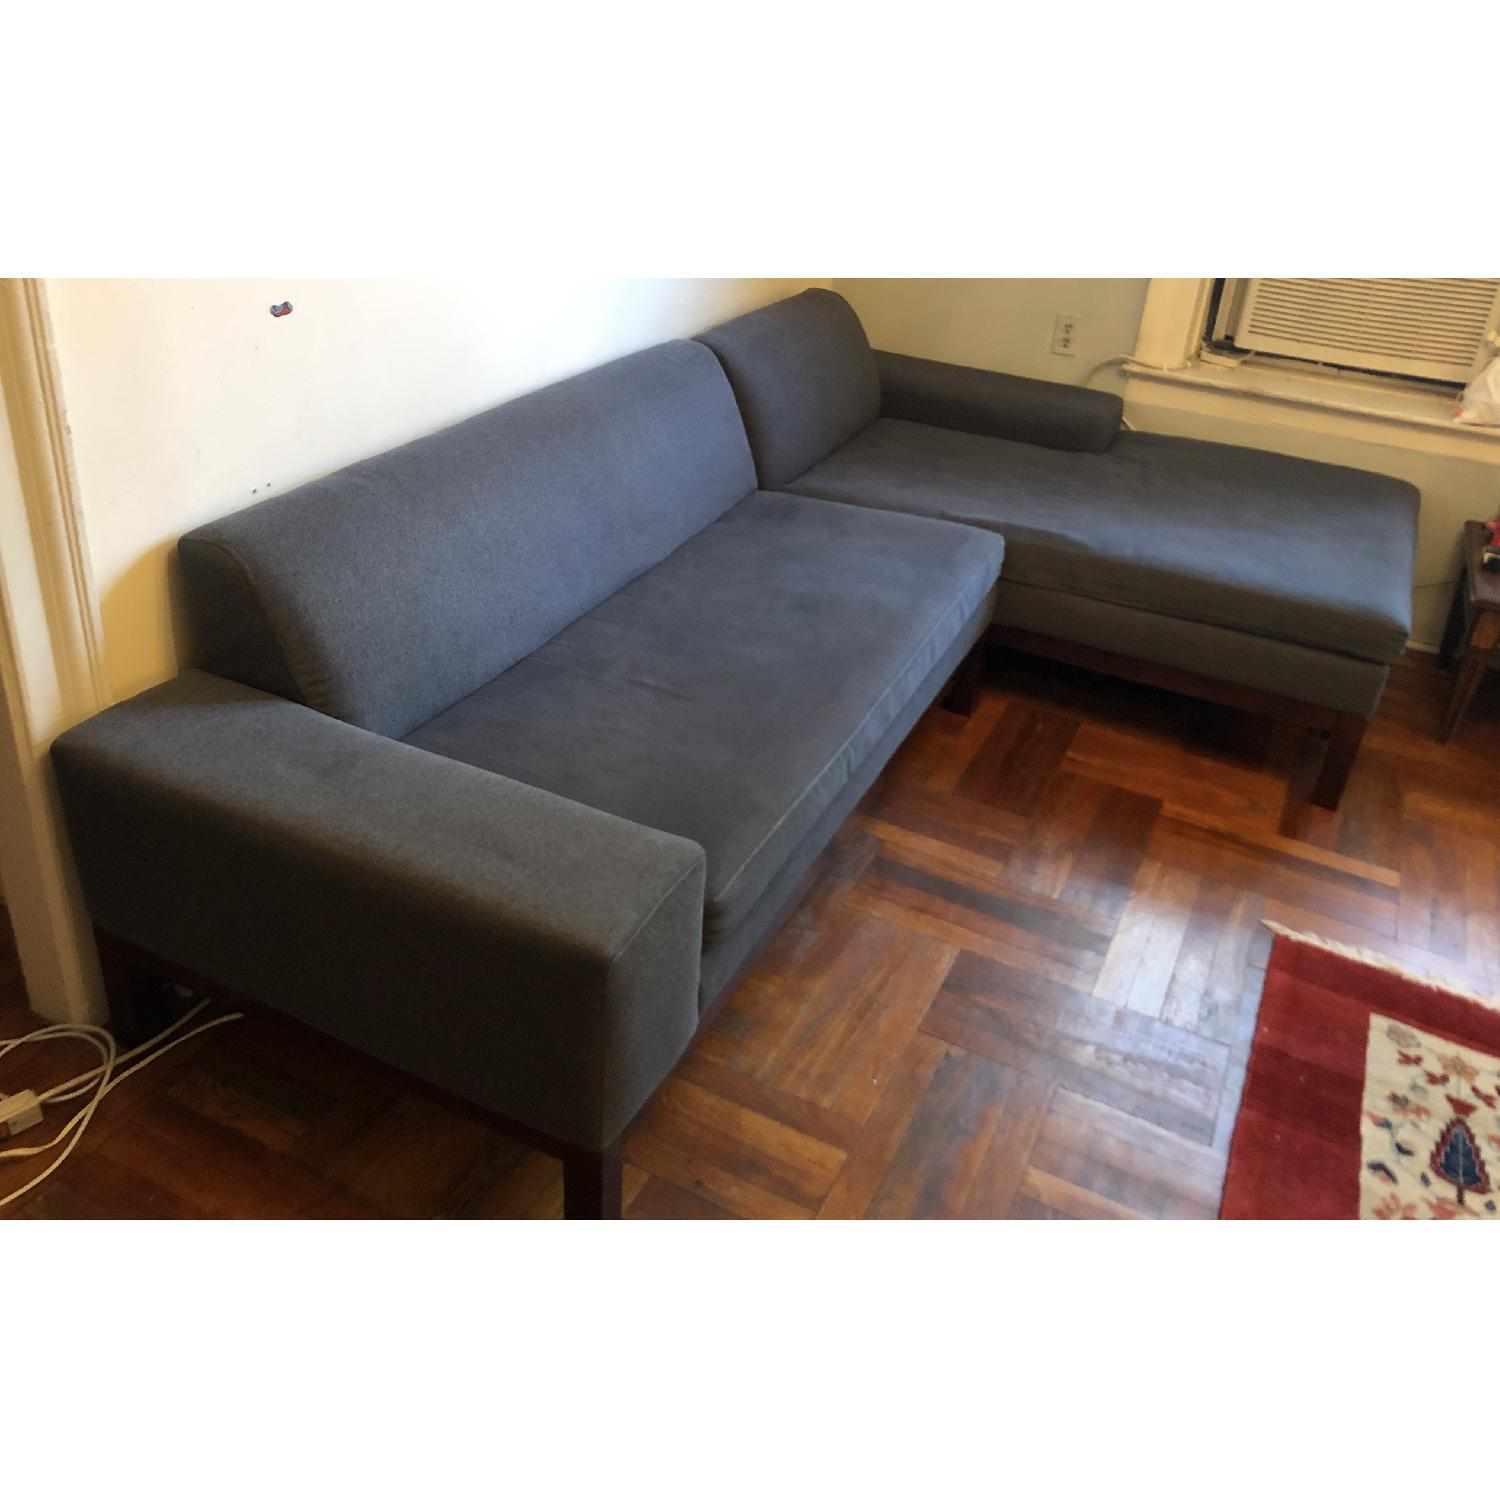 West Elm Sectional Sofa w/ Chaise - image-1